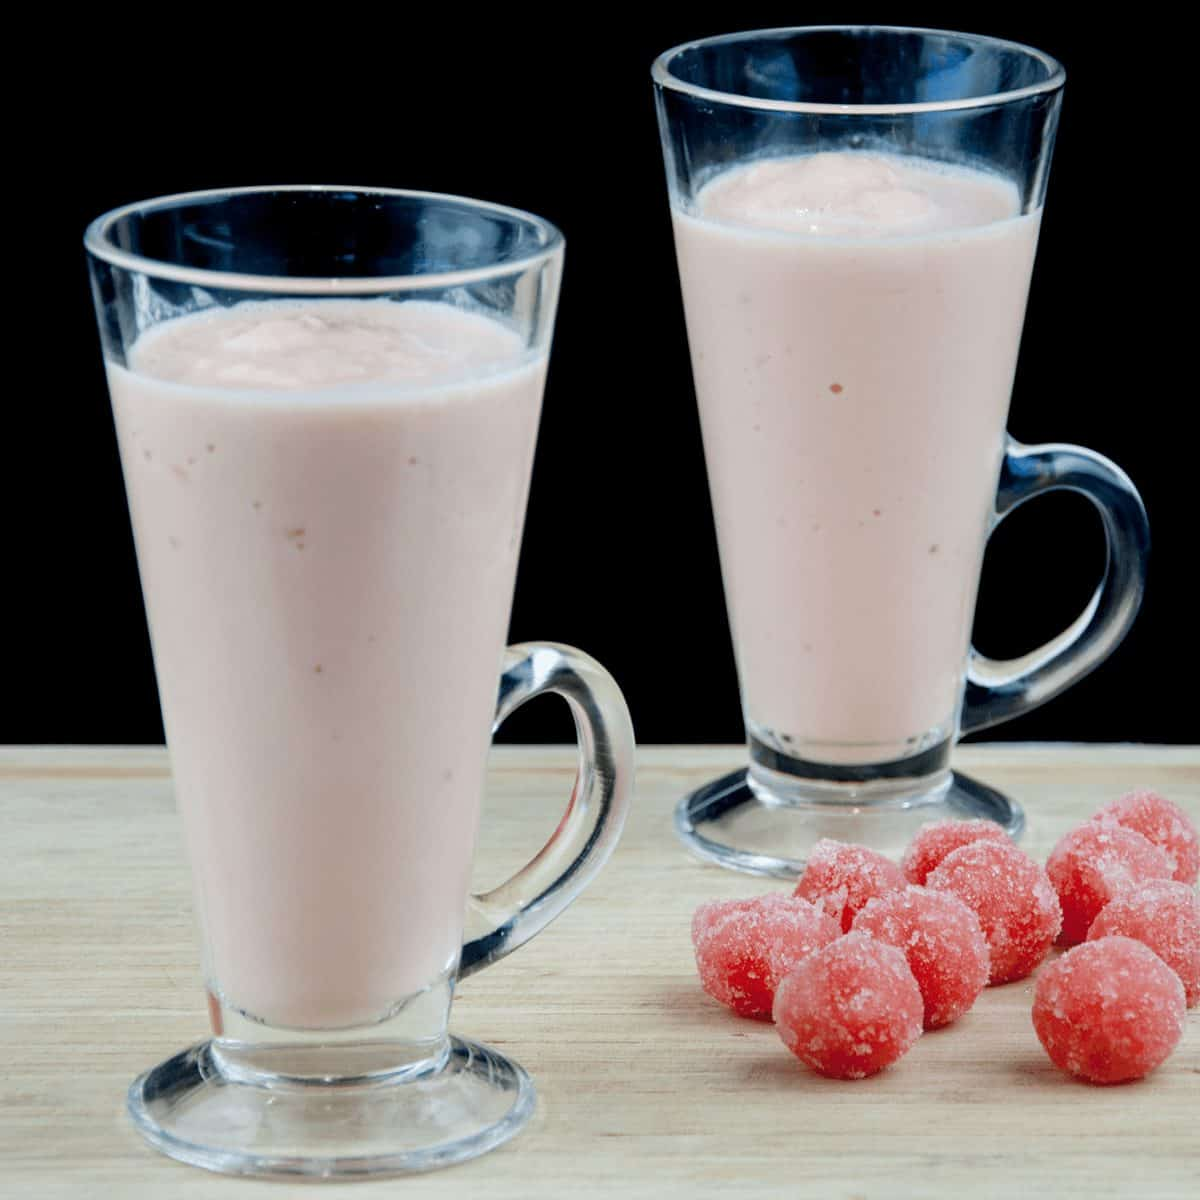 Watermelon and pineapple smoothie! So tasty and just 4 ingredients! Watermelon, pineapple, Greek yoghurt, and ice. 1% fat and less than 200 calories! Yum! | theyumyumclub.com